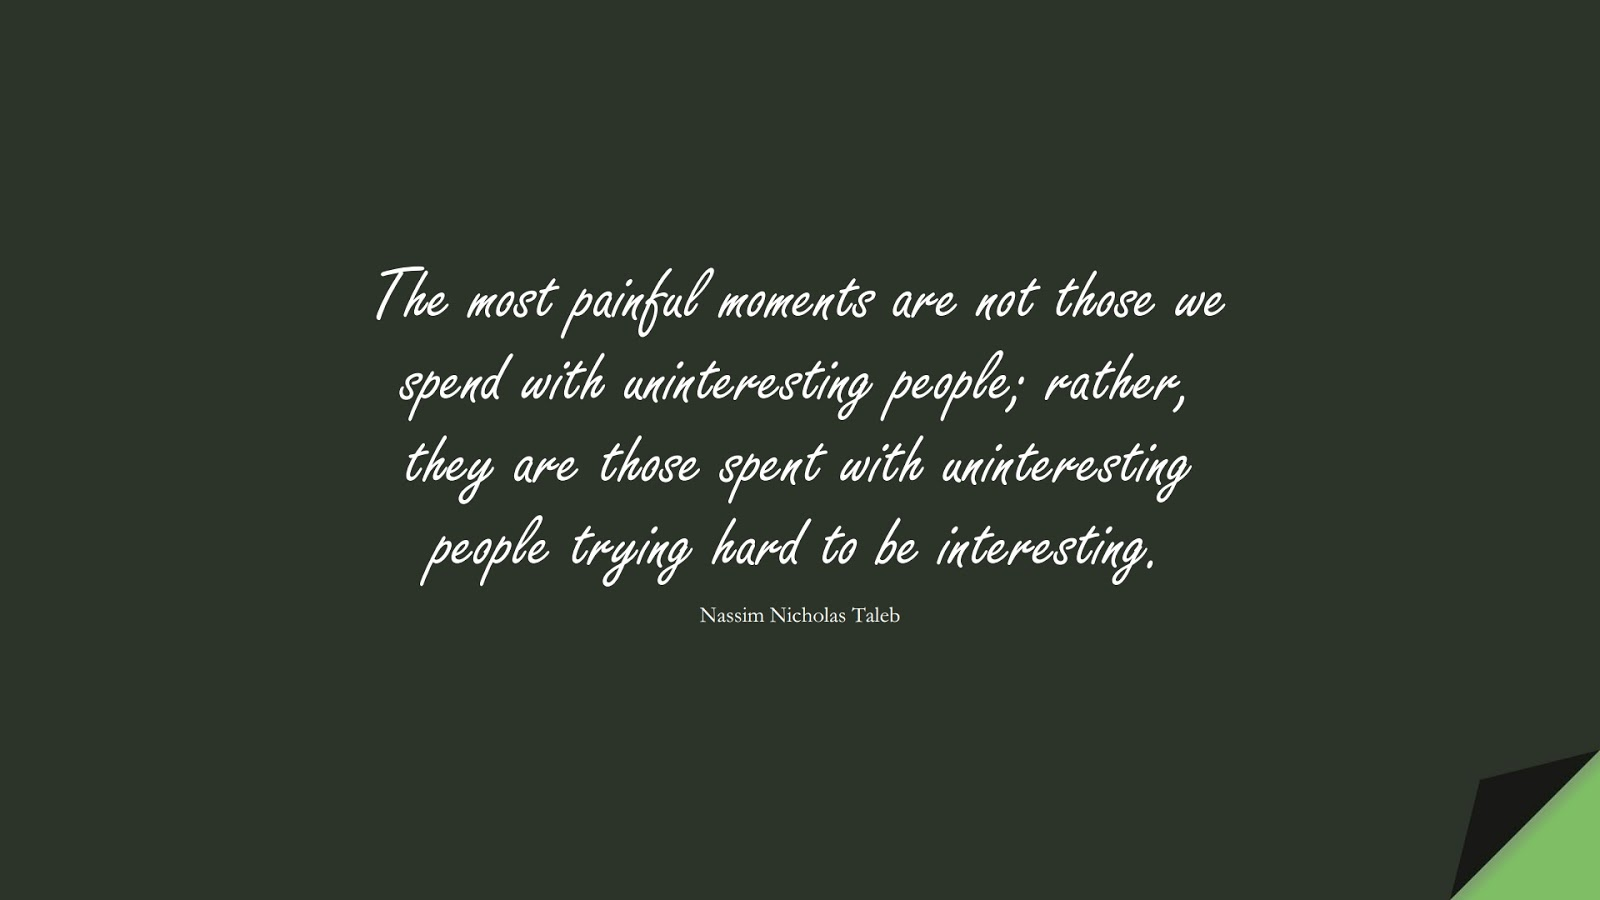 The most painful moments are not those we spend with uninteresting people; rather, they are those spent with uninteresting people trying hard to be interesting. (Nassim Nicholas Taleb);  #RelationshipQuotes